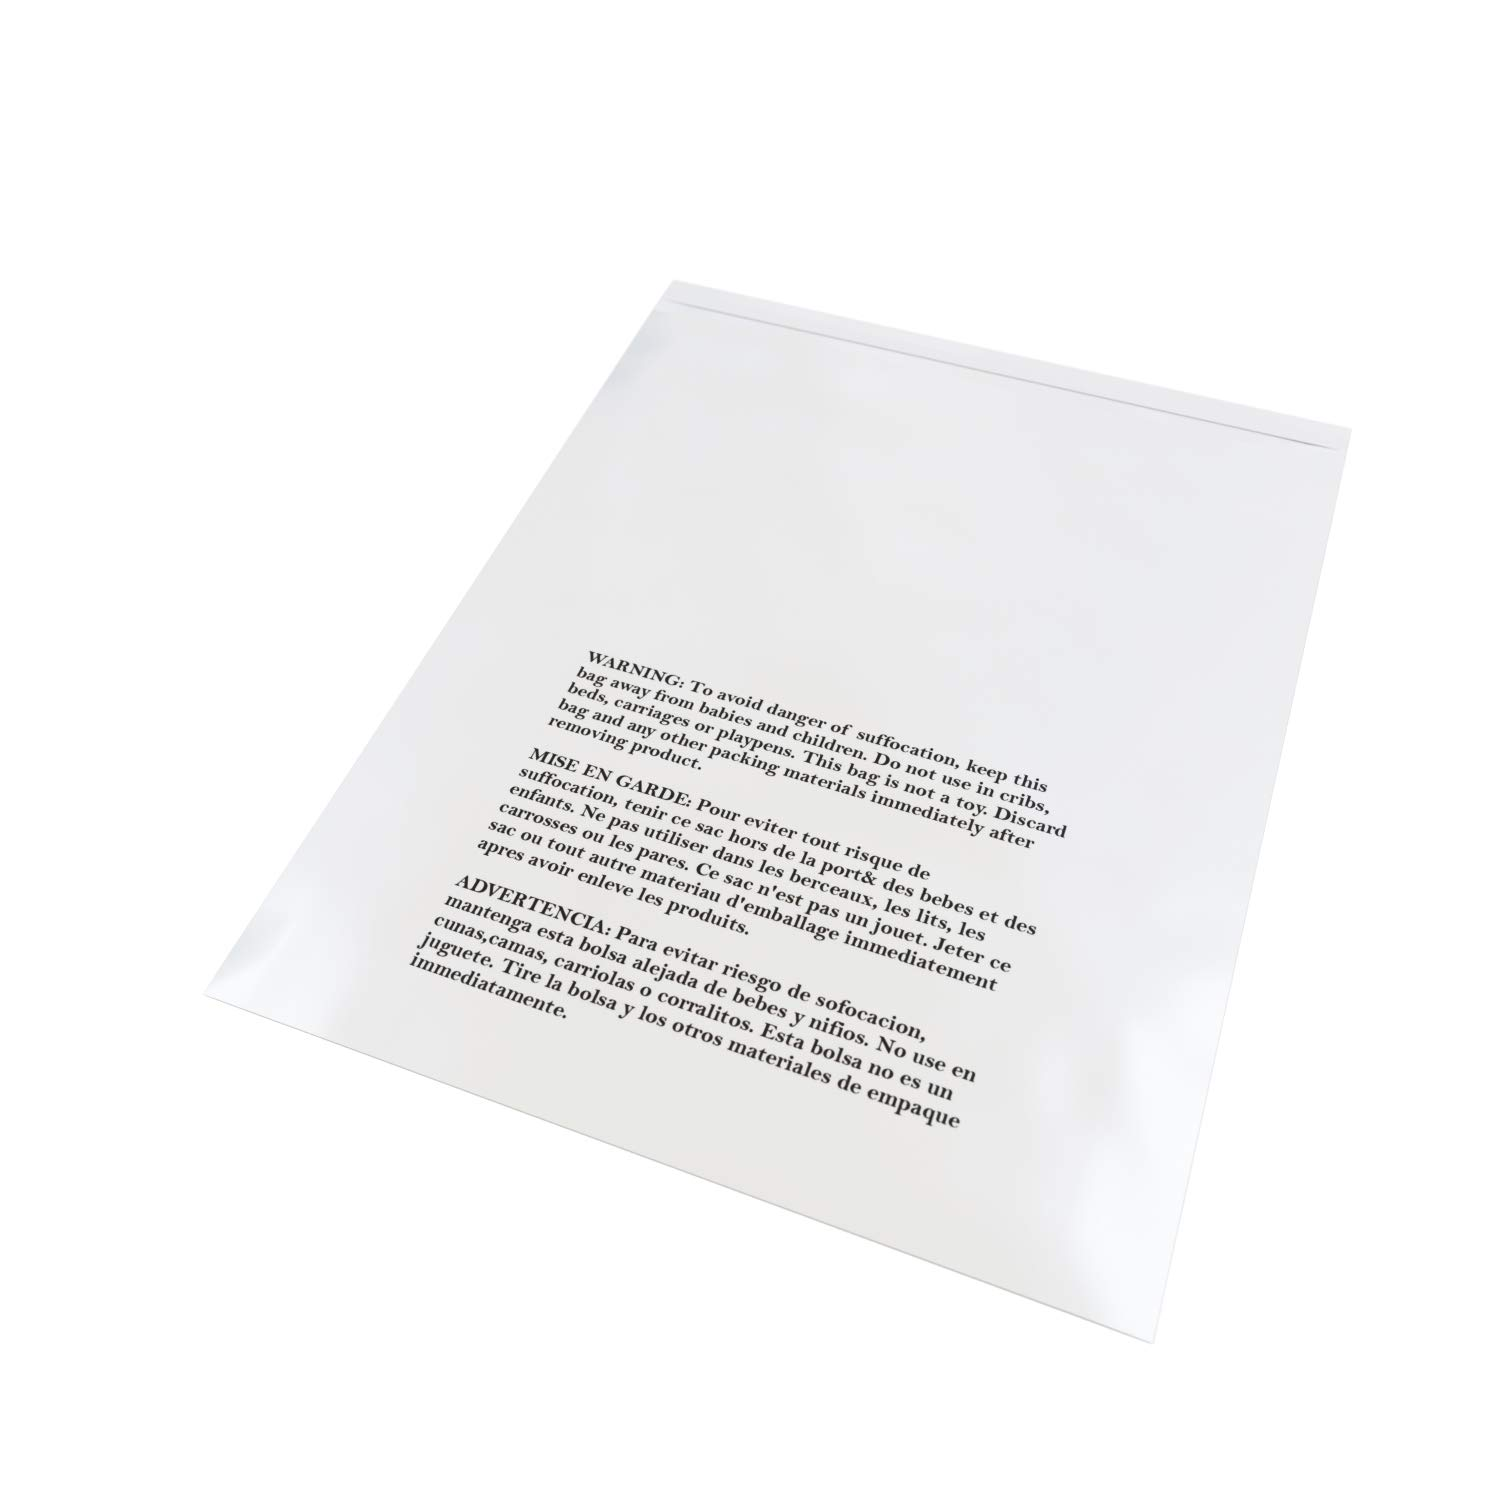 Amazon.com: Retail Supply Co Clear Poly Bags with Suffocation Warning - Multiple Size Options Available - (20x24 Extra Strong Seal): Office Products